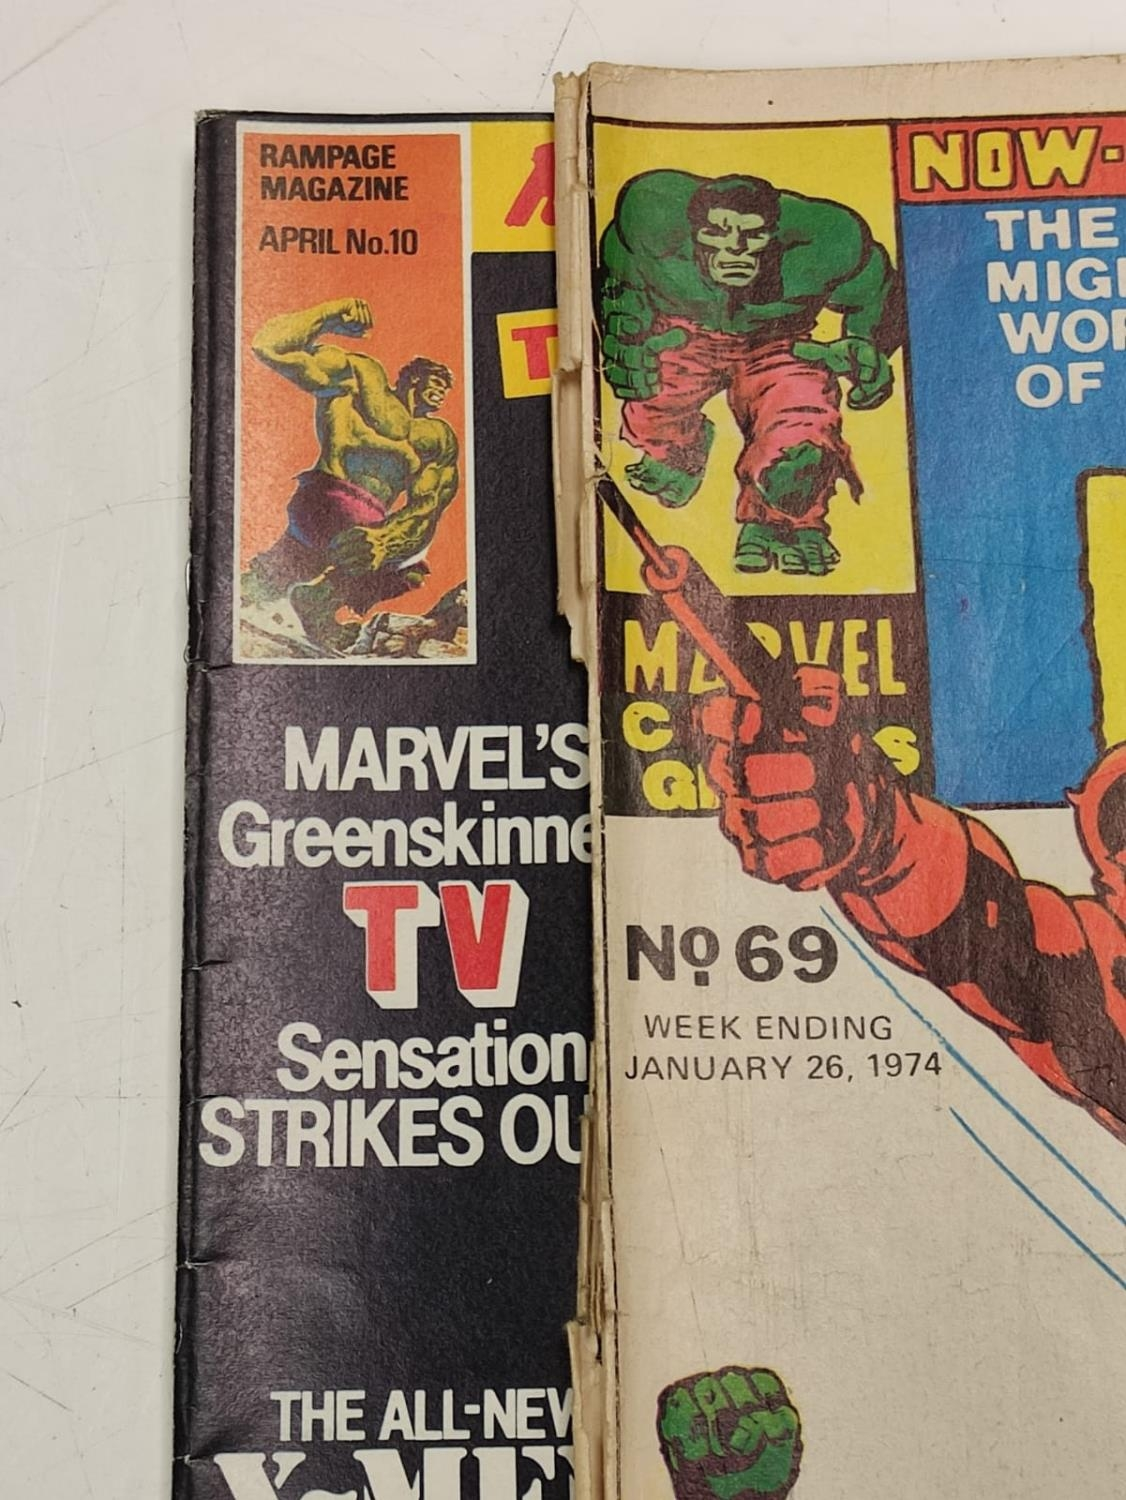 20 editions of mixed Vintage Marvel Comics. - Image 52 of 56